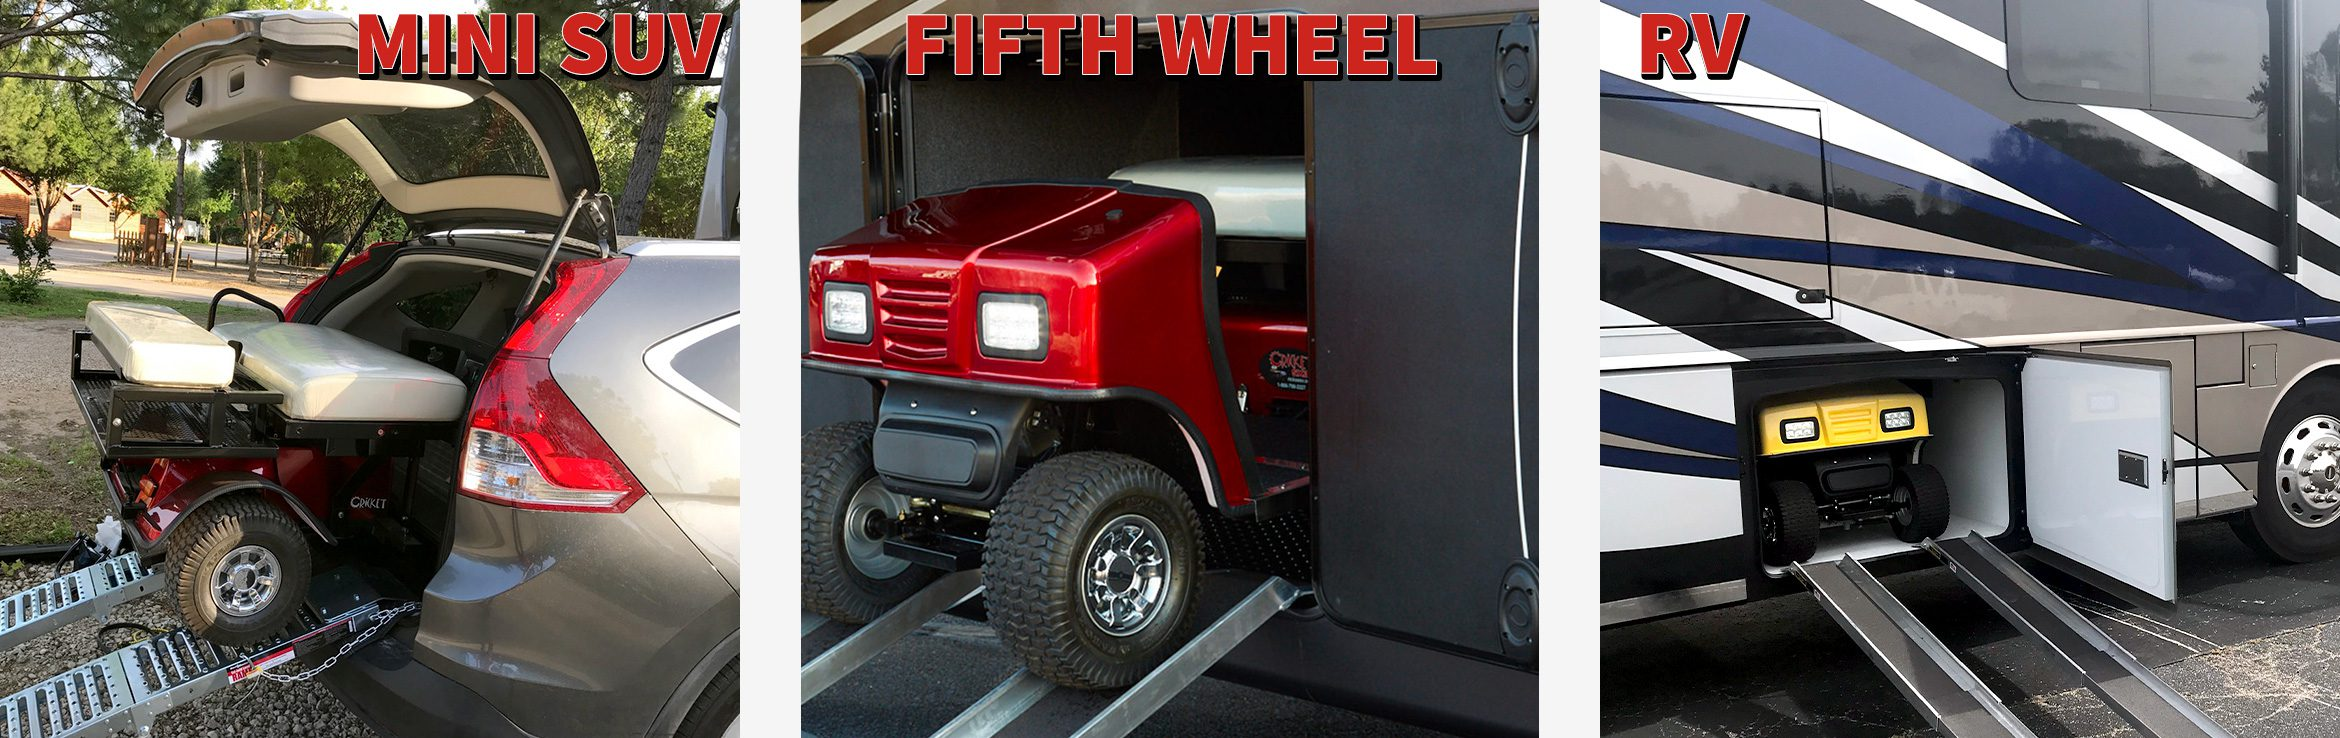 cricket-rv-golf-cart-can-fit-anywhere